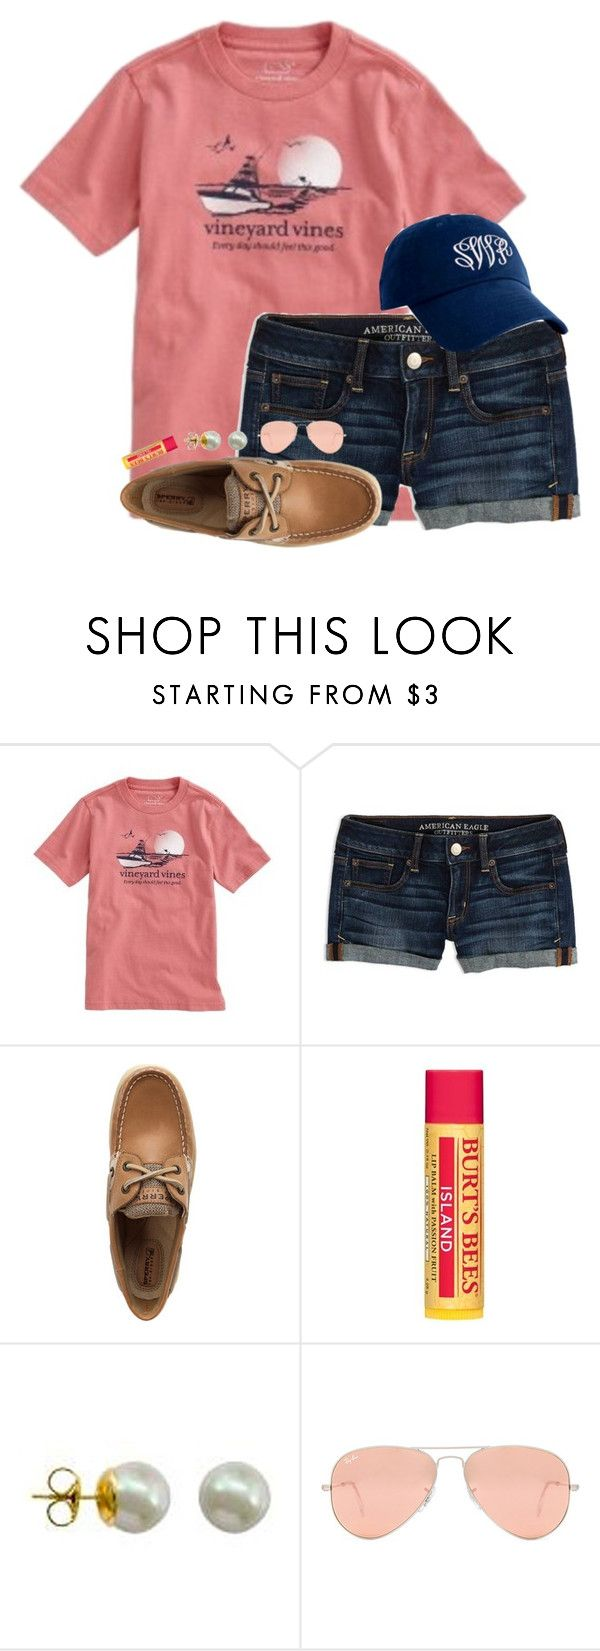 """50 likes??? Y'all can do it"" by hgw8503 ❤ liked on Polyvore featuring Vineyard Vines, American Eagle Outfitters, Sperry, Burt's Bees, Majorica and Ray-Ban"